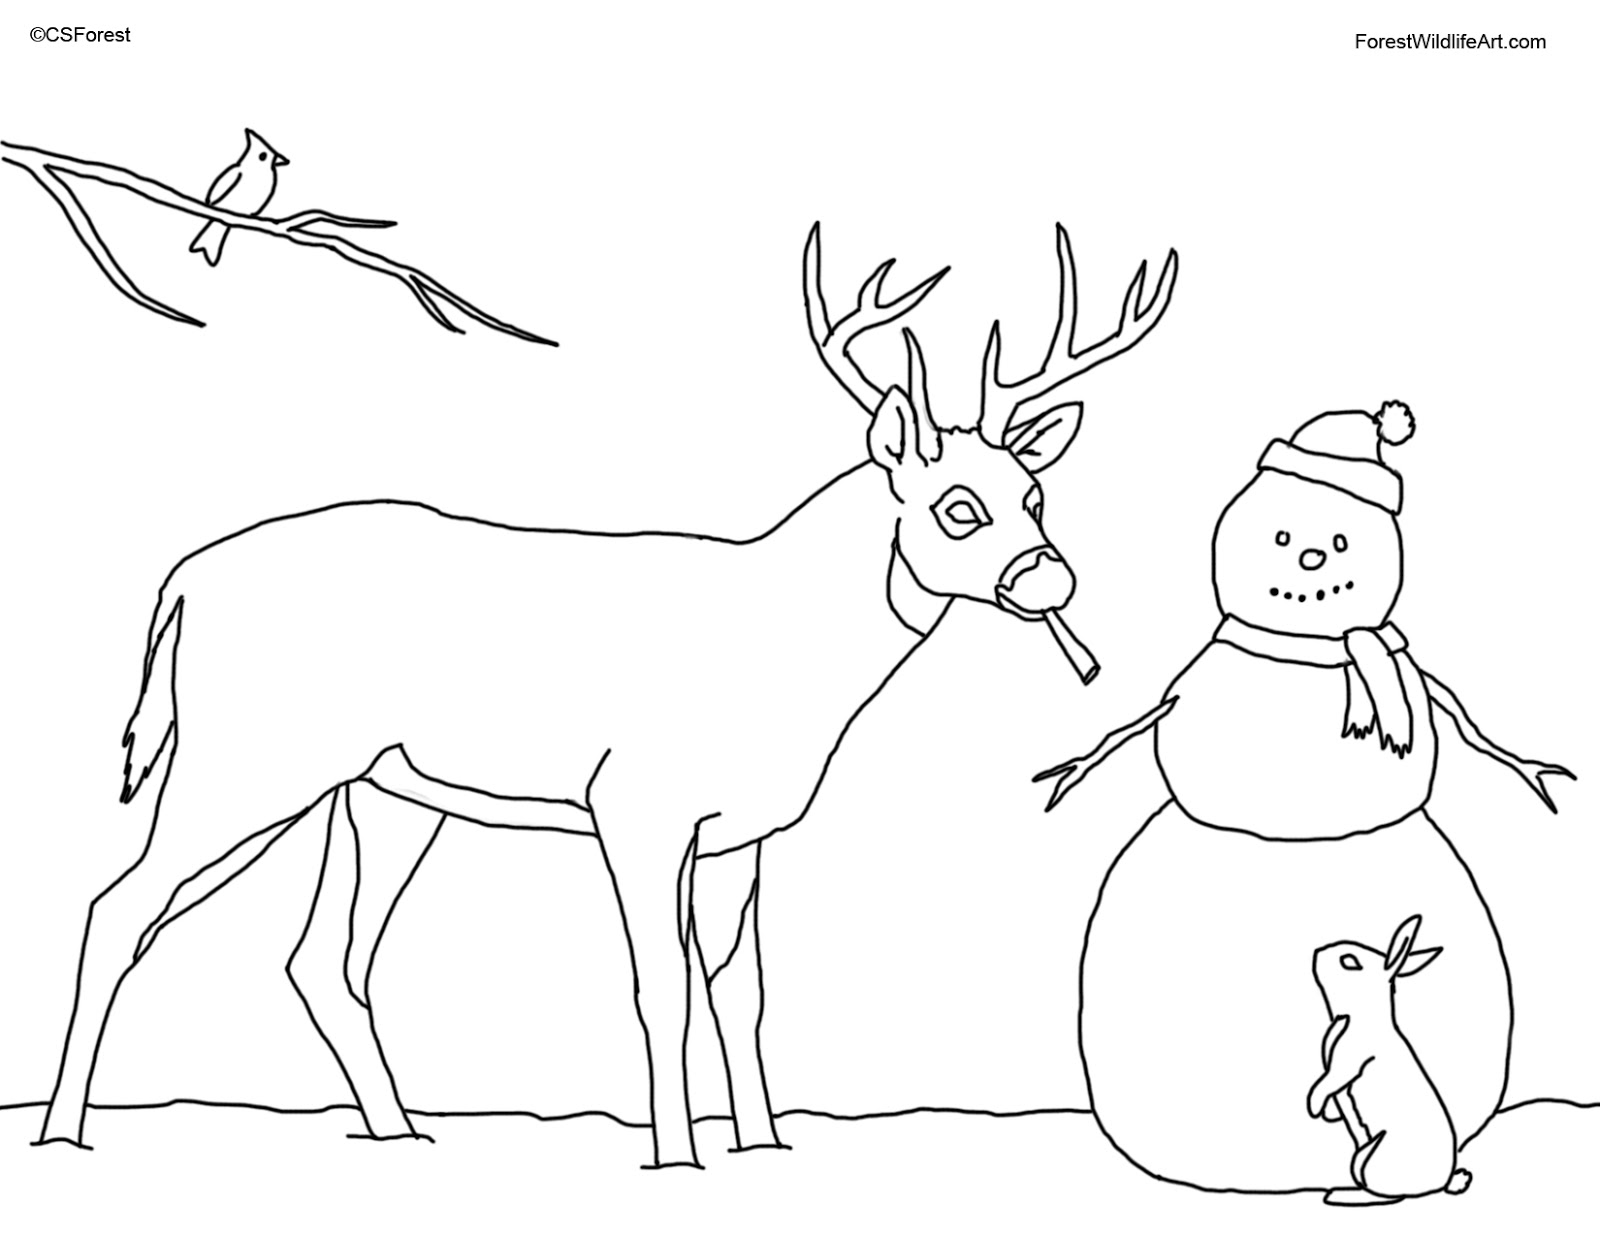 Whitetail buck coloring pages ~ Crista Forest's Animals & Art: 11/1/12 - 12/1/12